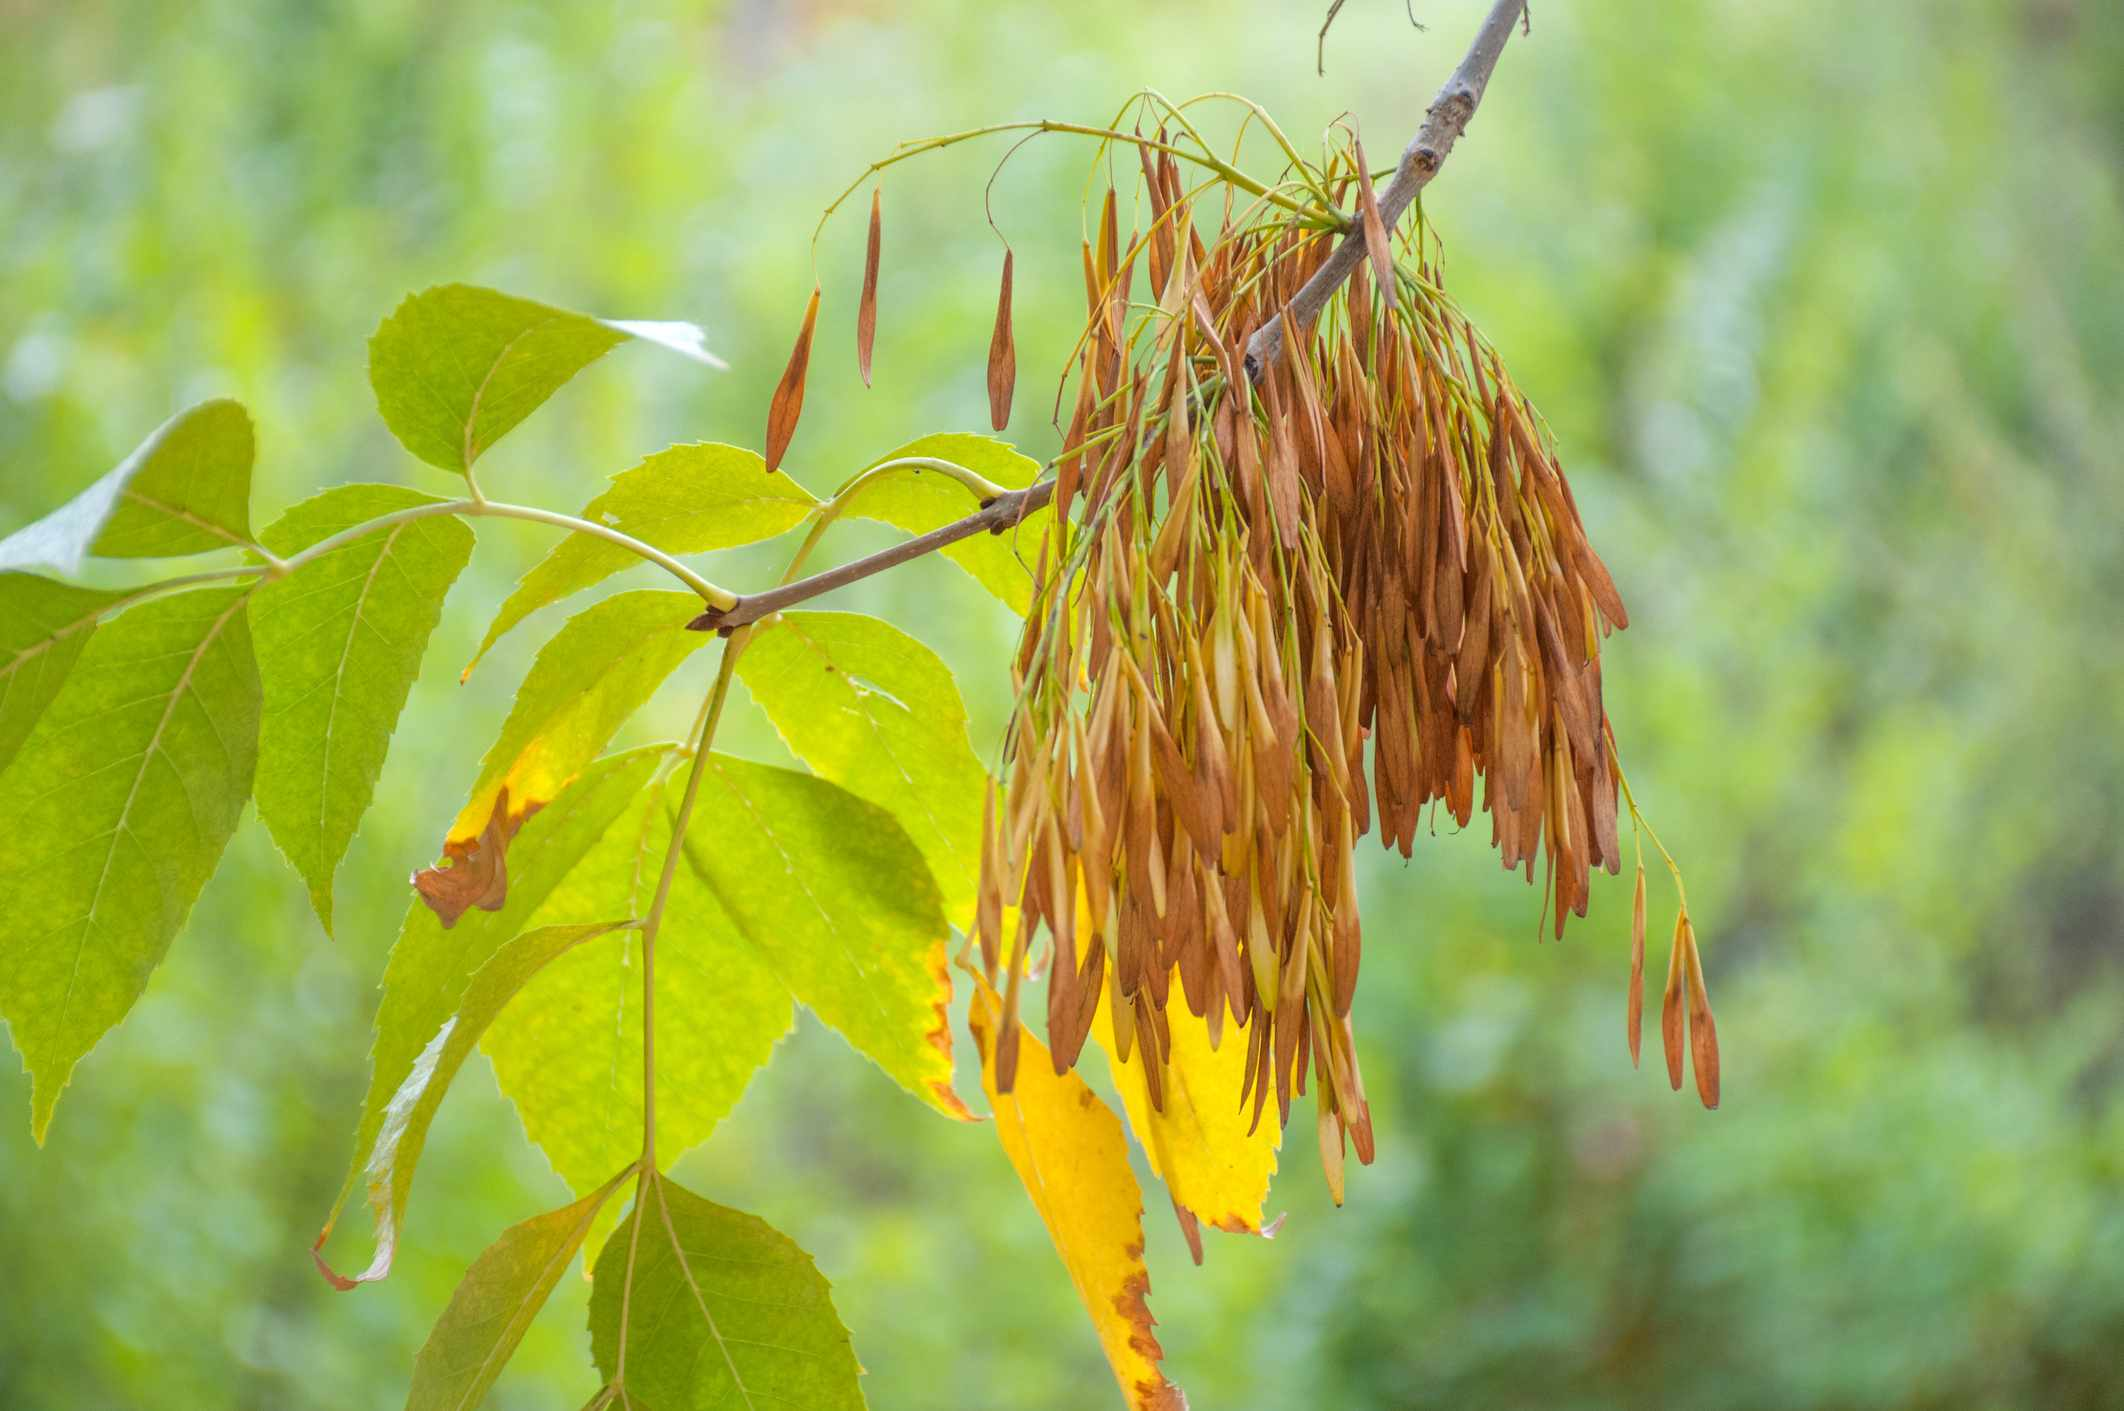 Pods and leaves on a branch of a Green Ash tree.